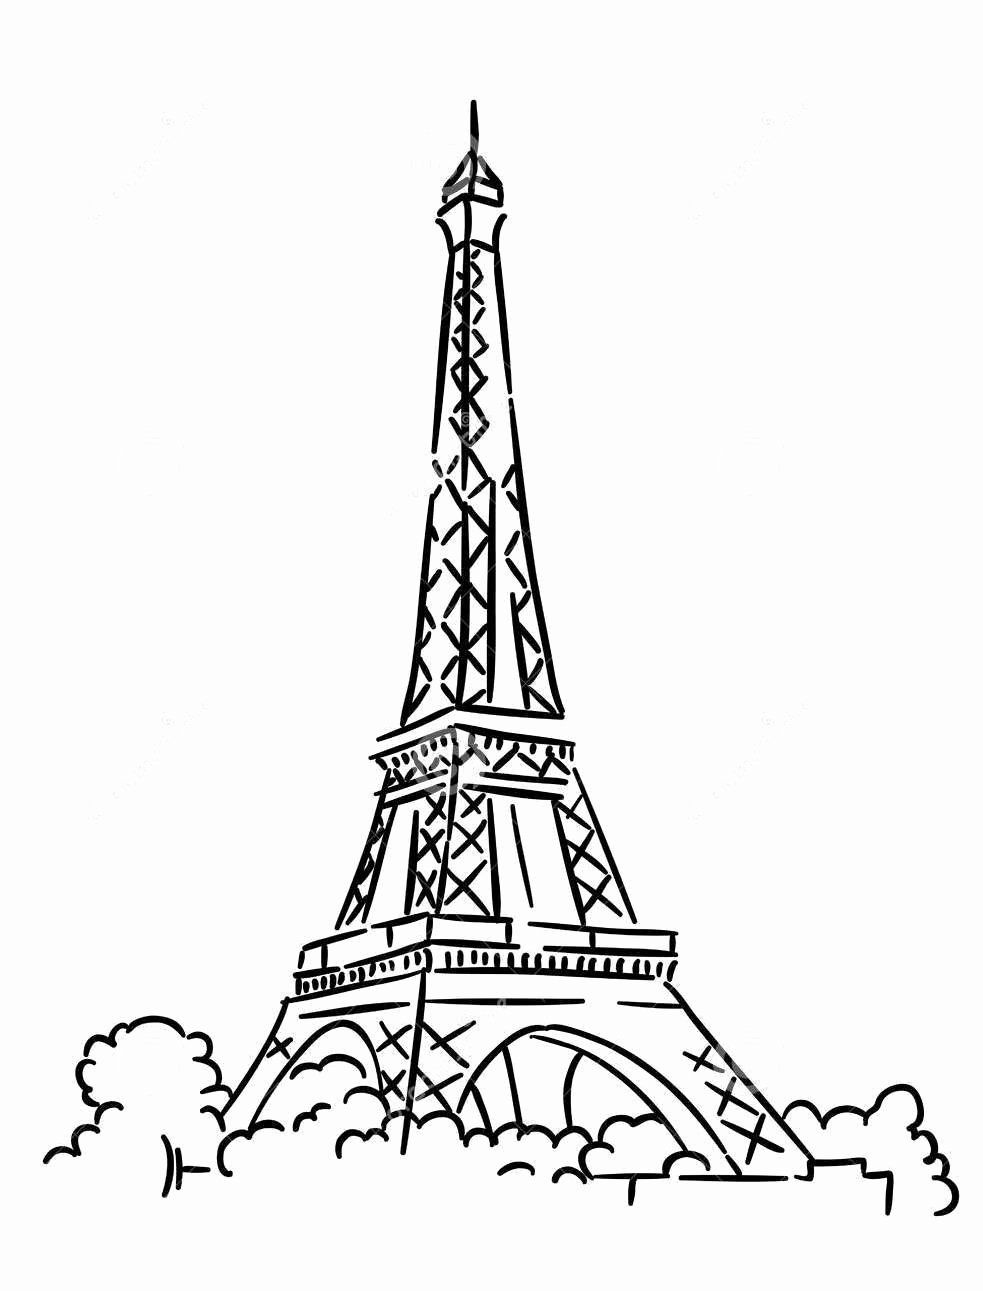 Eifel Tower Coloring Page Best Of Eiffel Tower Coloring Pages